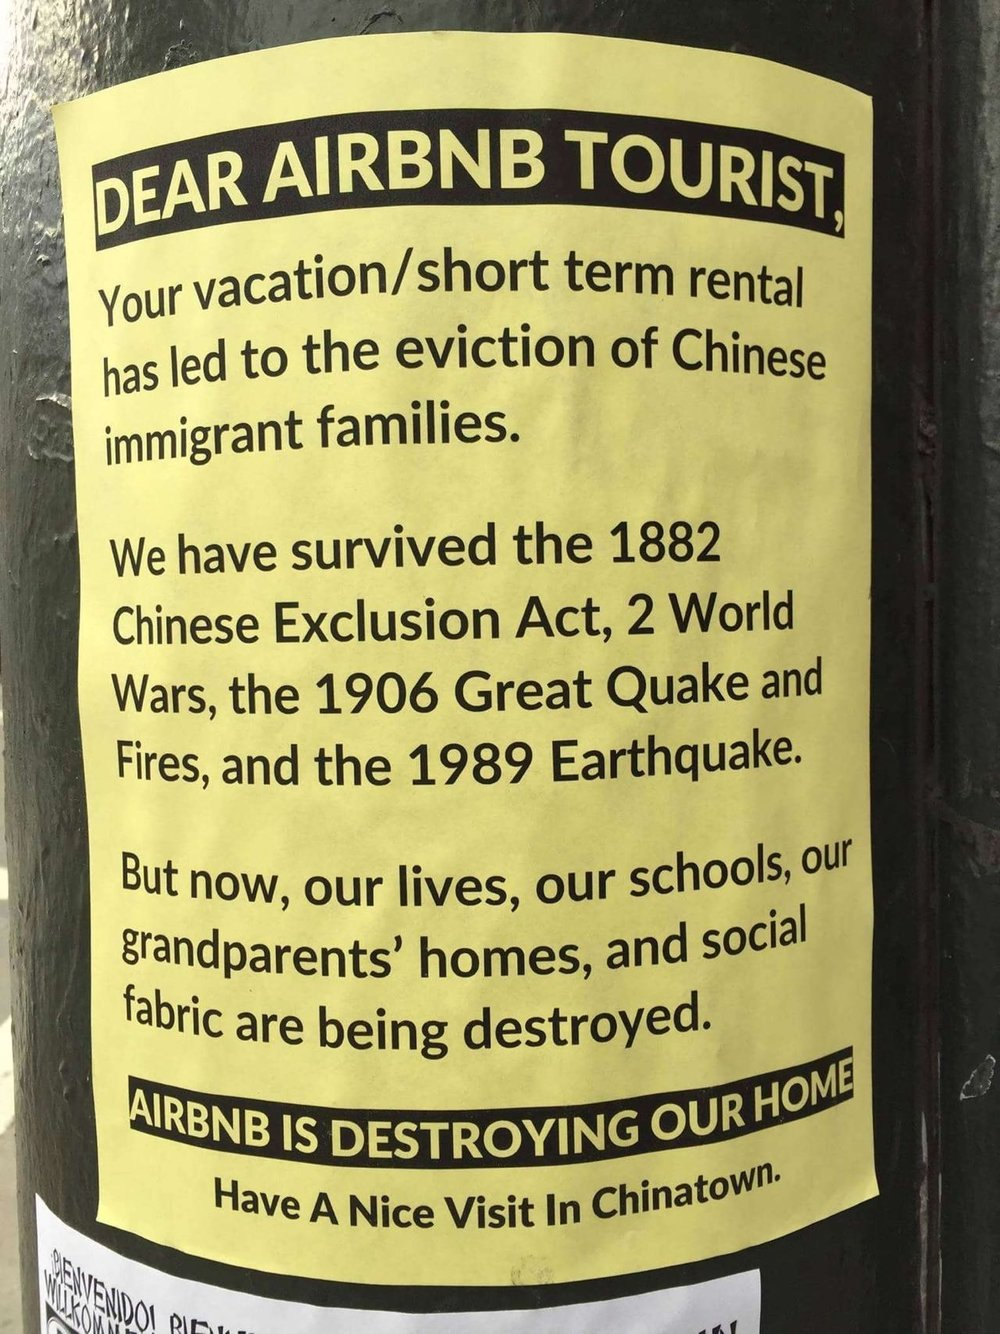 An anti-Airbnb sign in San Francisco's Chinatown. Photo:  Leigh Blackall